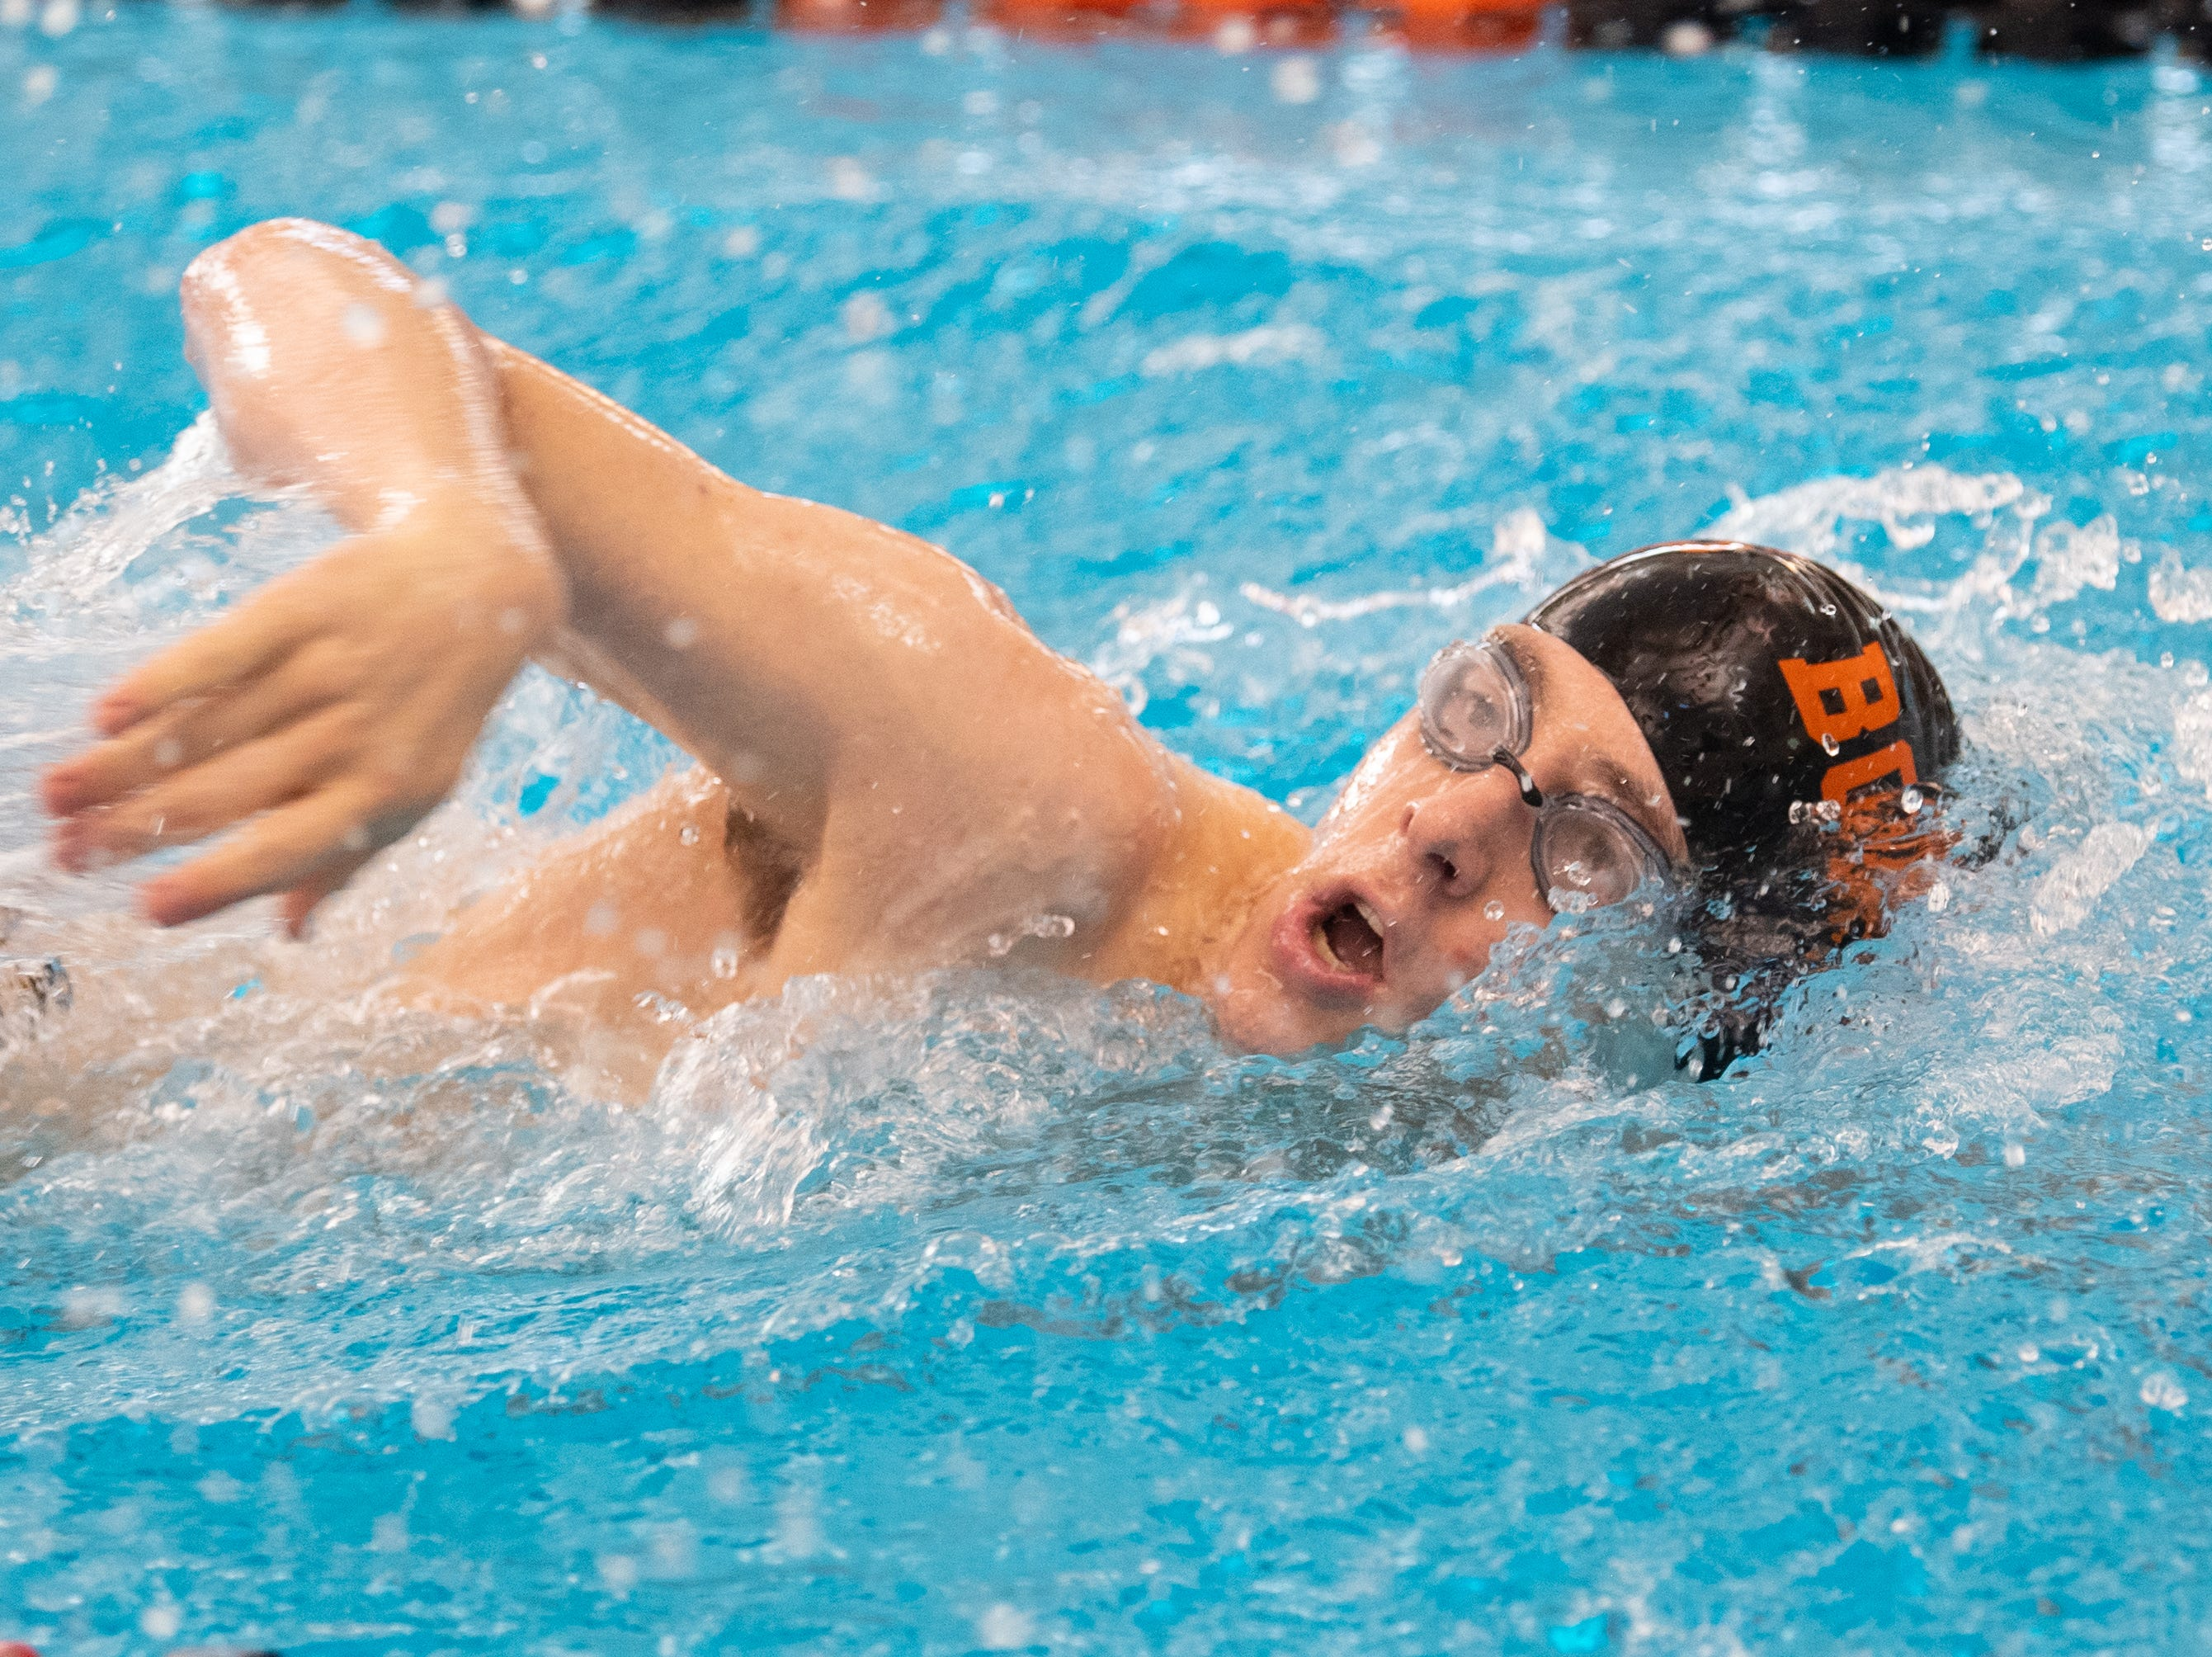 Northwestern's Casey Helmeczi competes in the Boys 500 Yard Freestyle during the 2019 YAIAA Swimming and Diving Championships at Central York High School, February 9, 2019.